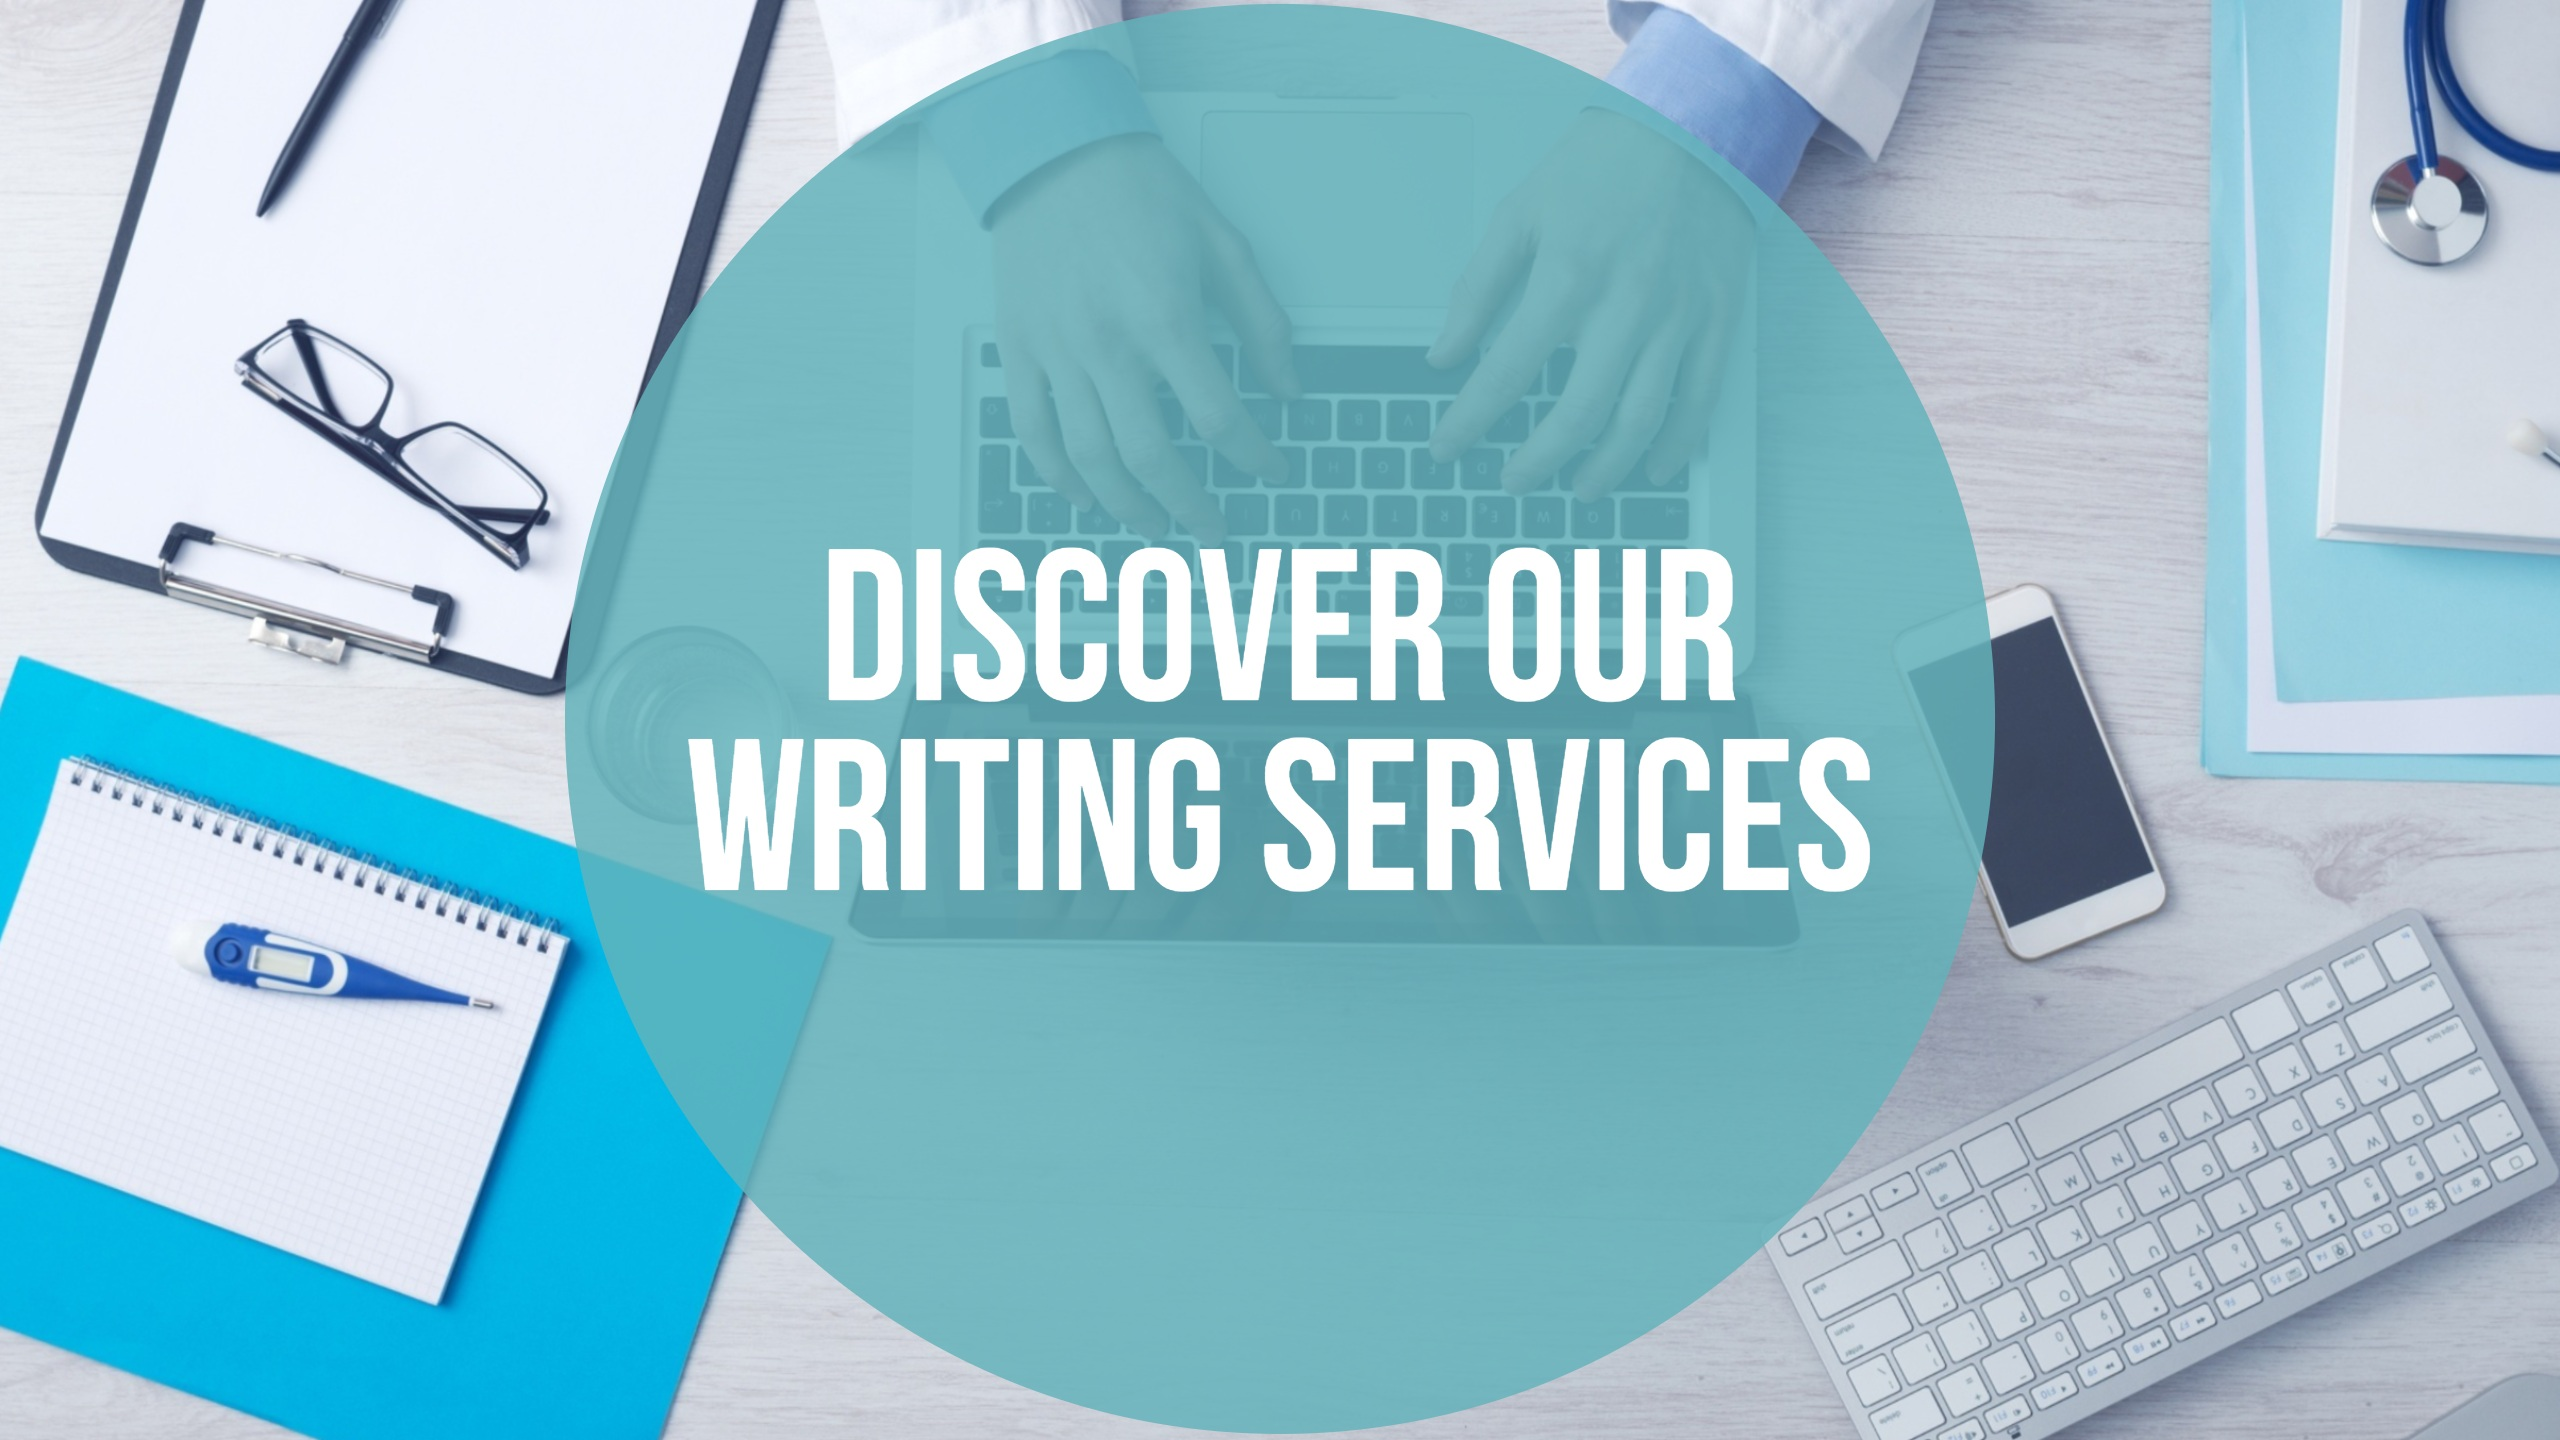 Learn more about the writing services available at Taylor Technical Consulting!